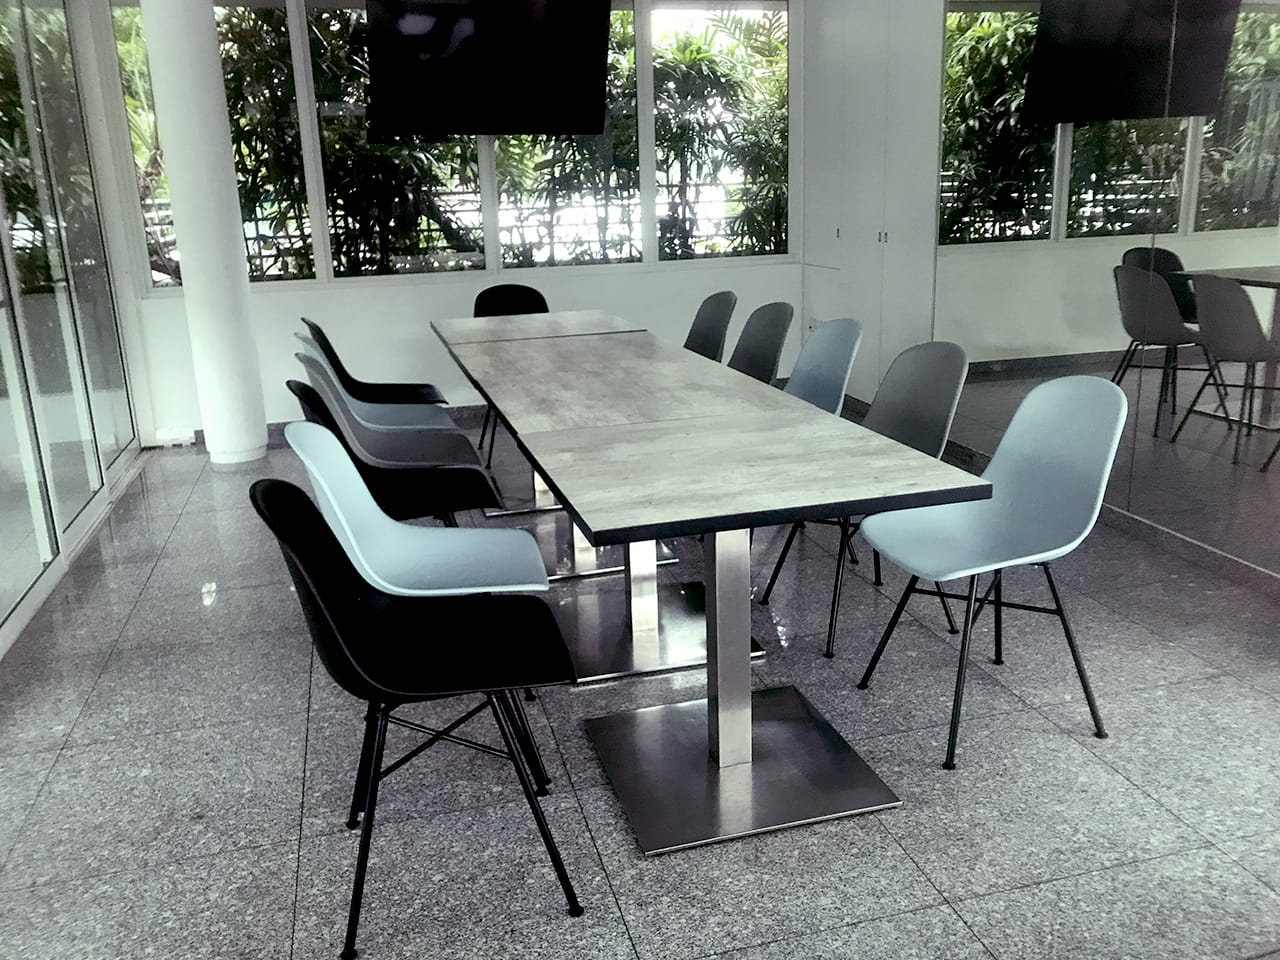 Trevista Condo - Toa Payoh| Product Seen: [Adik – Steel Chair & Customised Laminated Tabletop With ABS Edging]